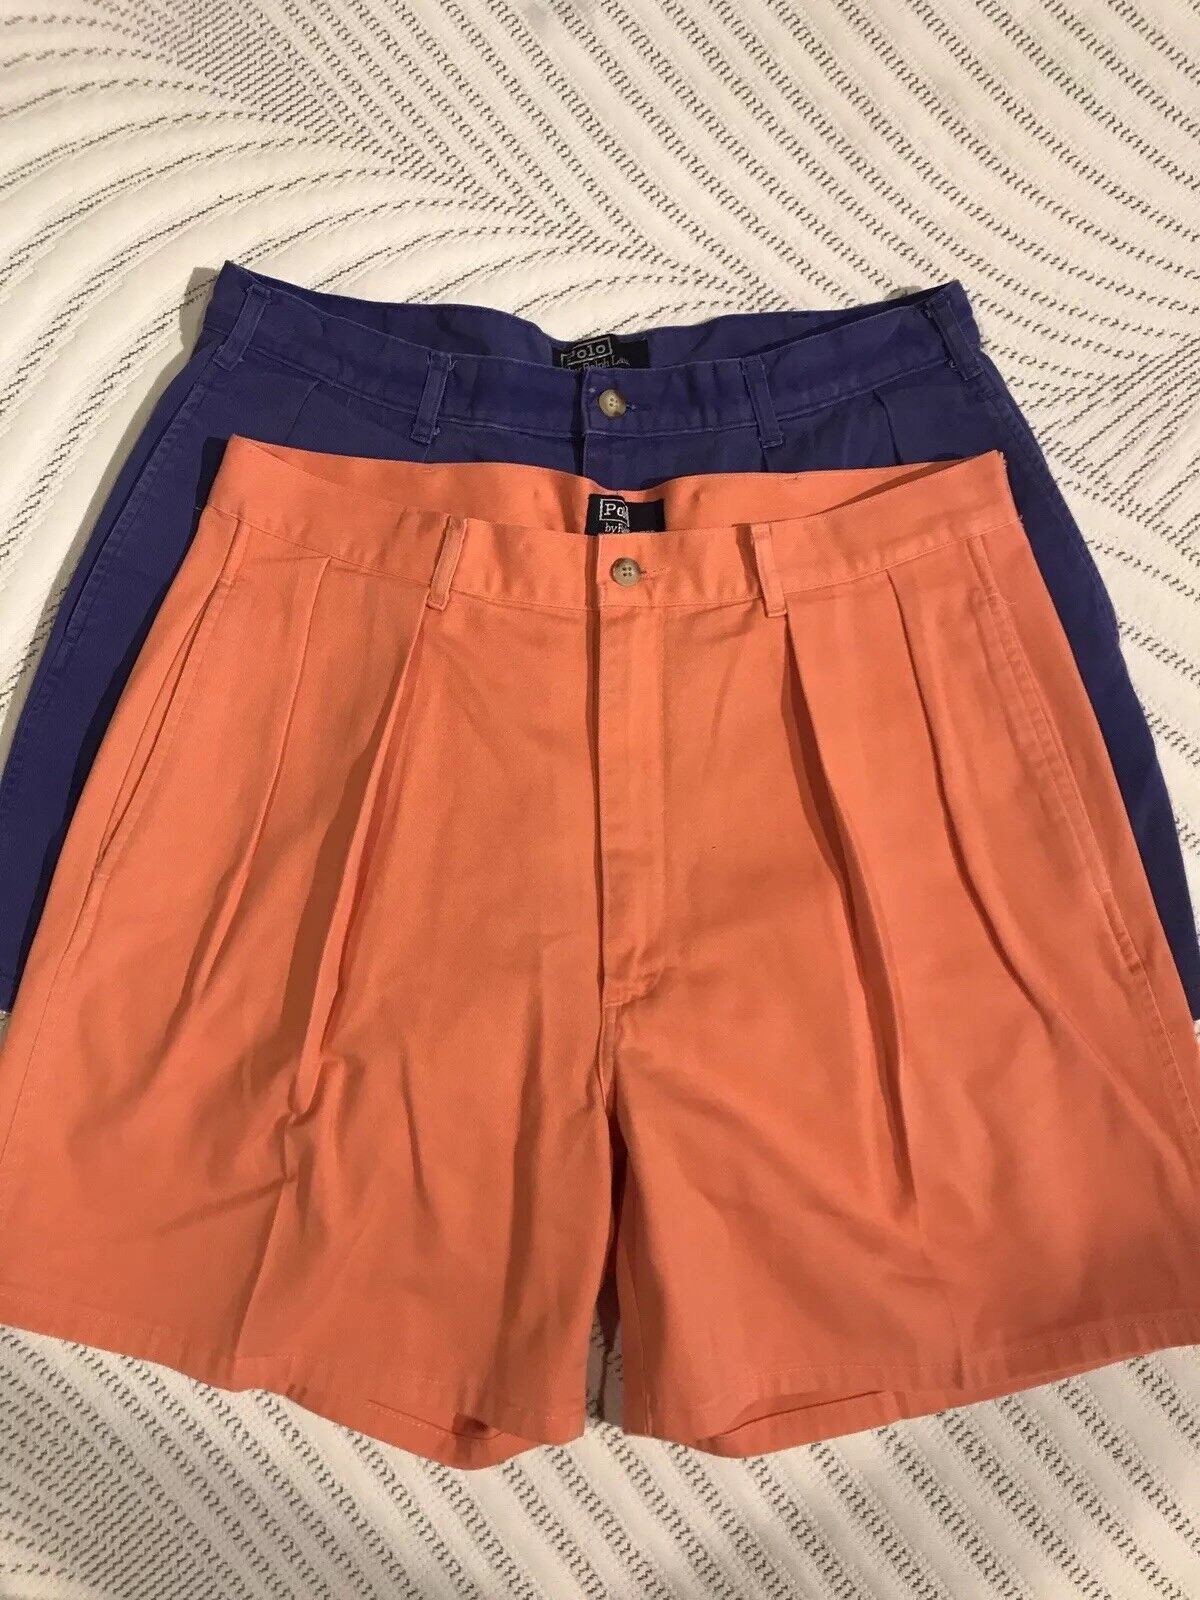 b936282f5c6dab Lot 2 Mens VTG Salmon bluee Polo Ralph Lauren Shorts USA 36 Pleated ...